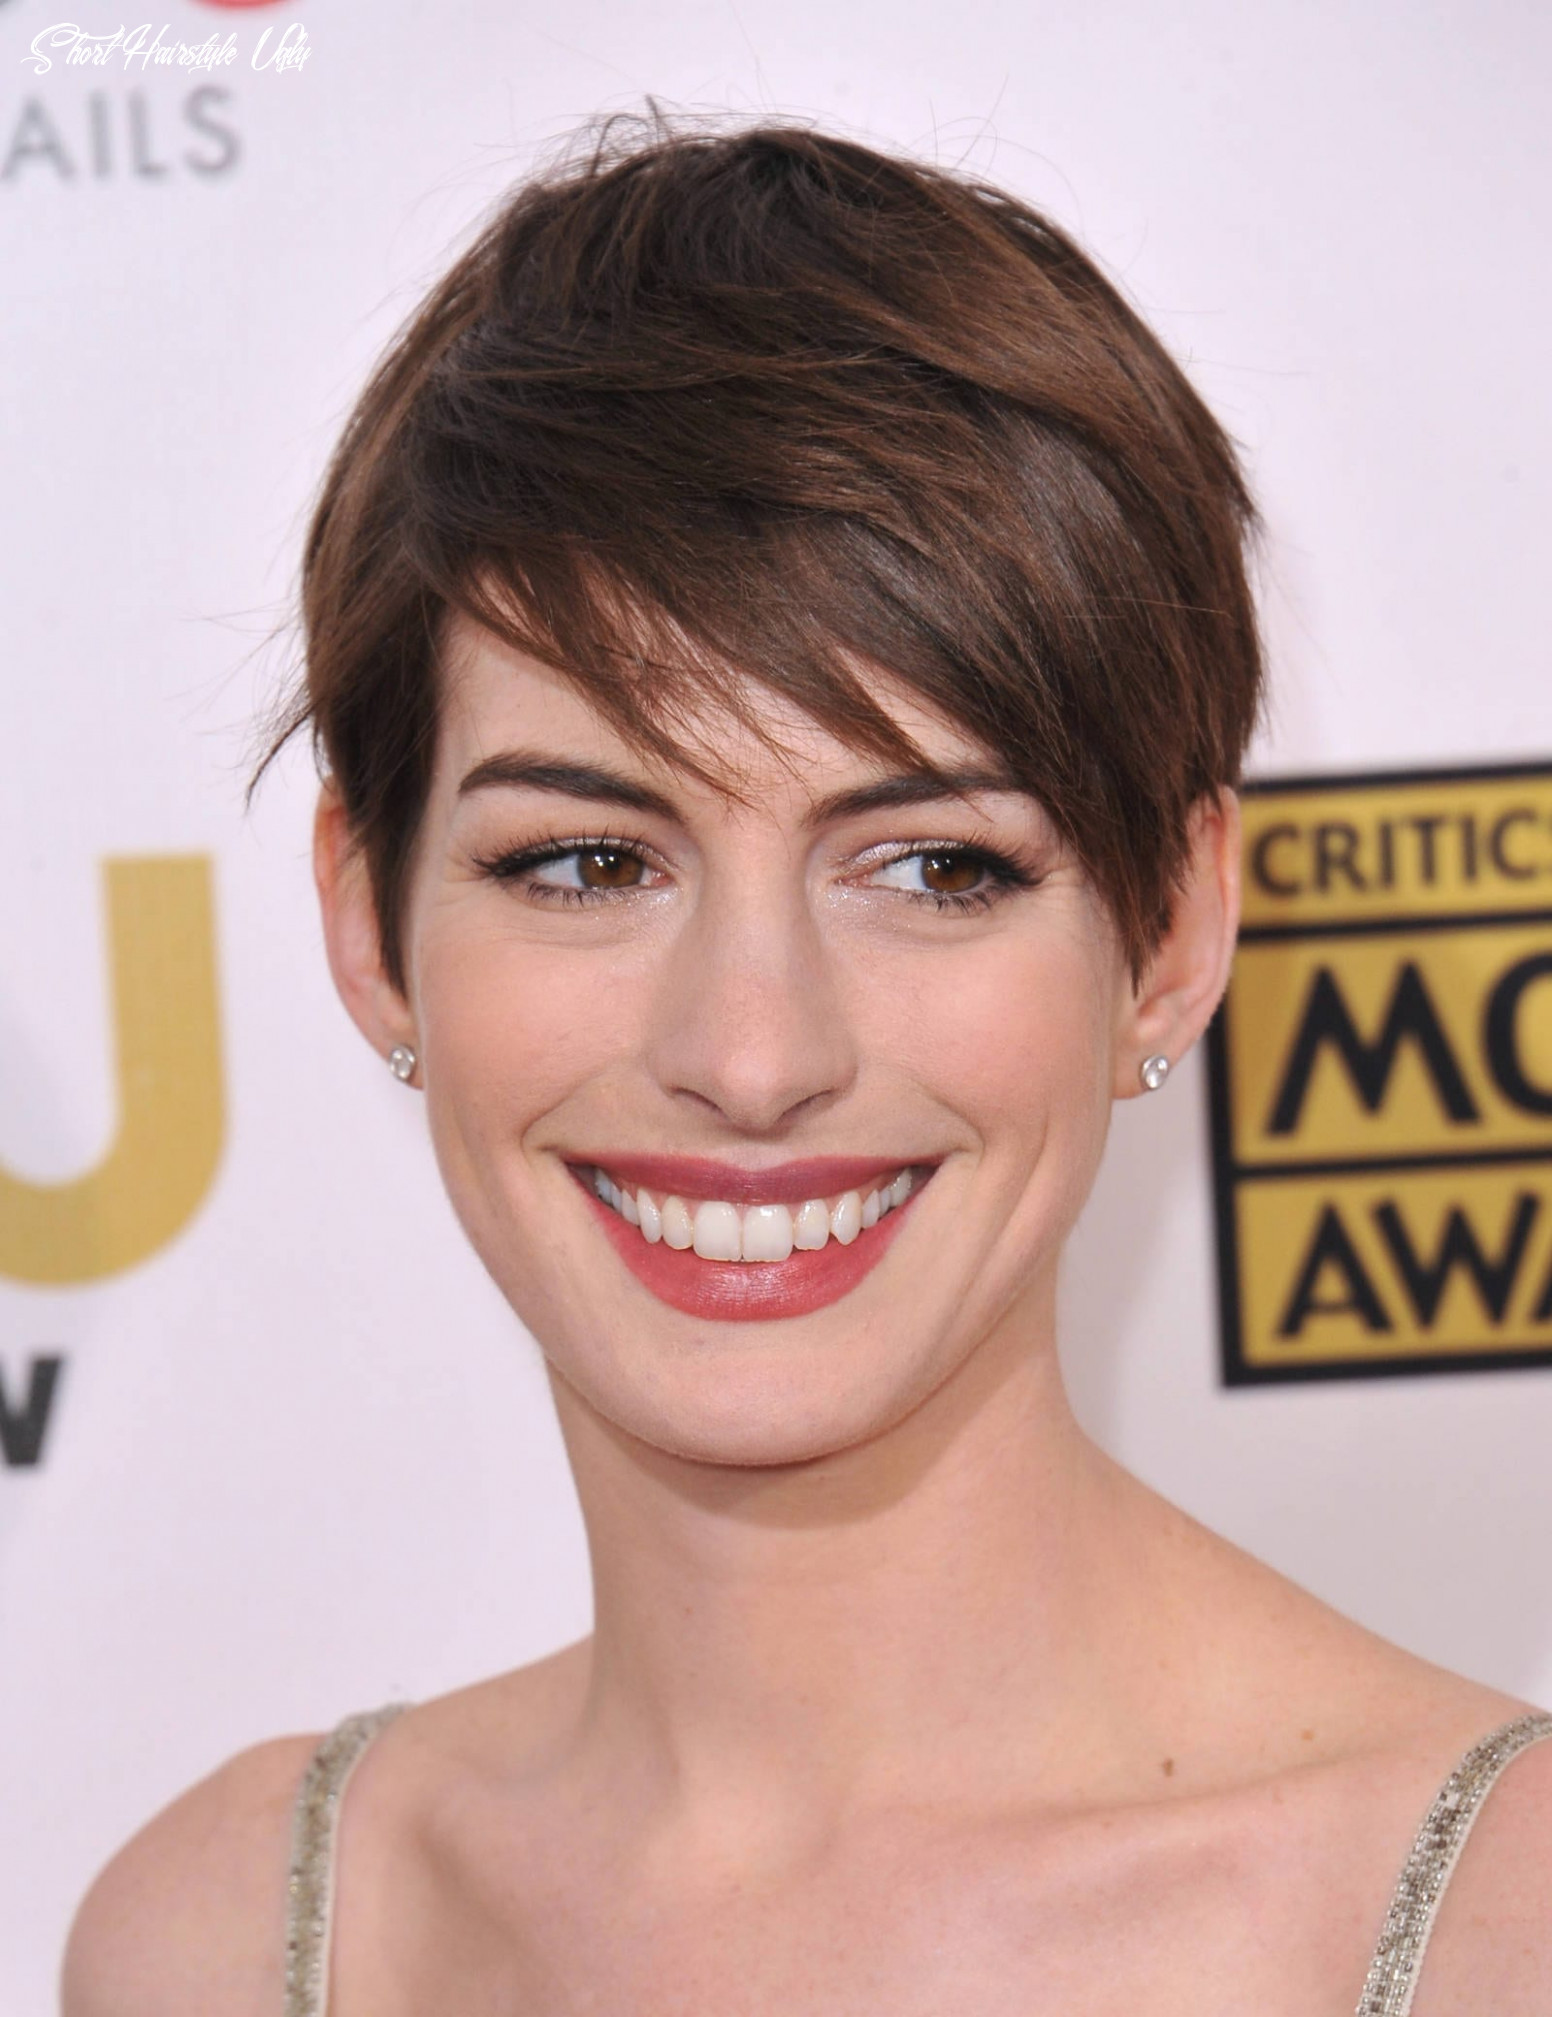 Empowering women: 12 reasons to get a short haircut short hairstyle ugly